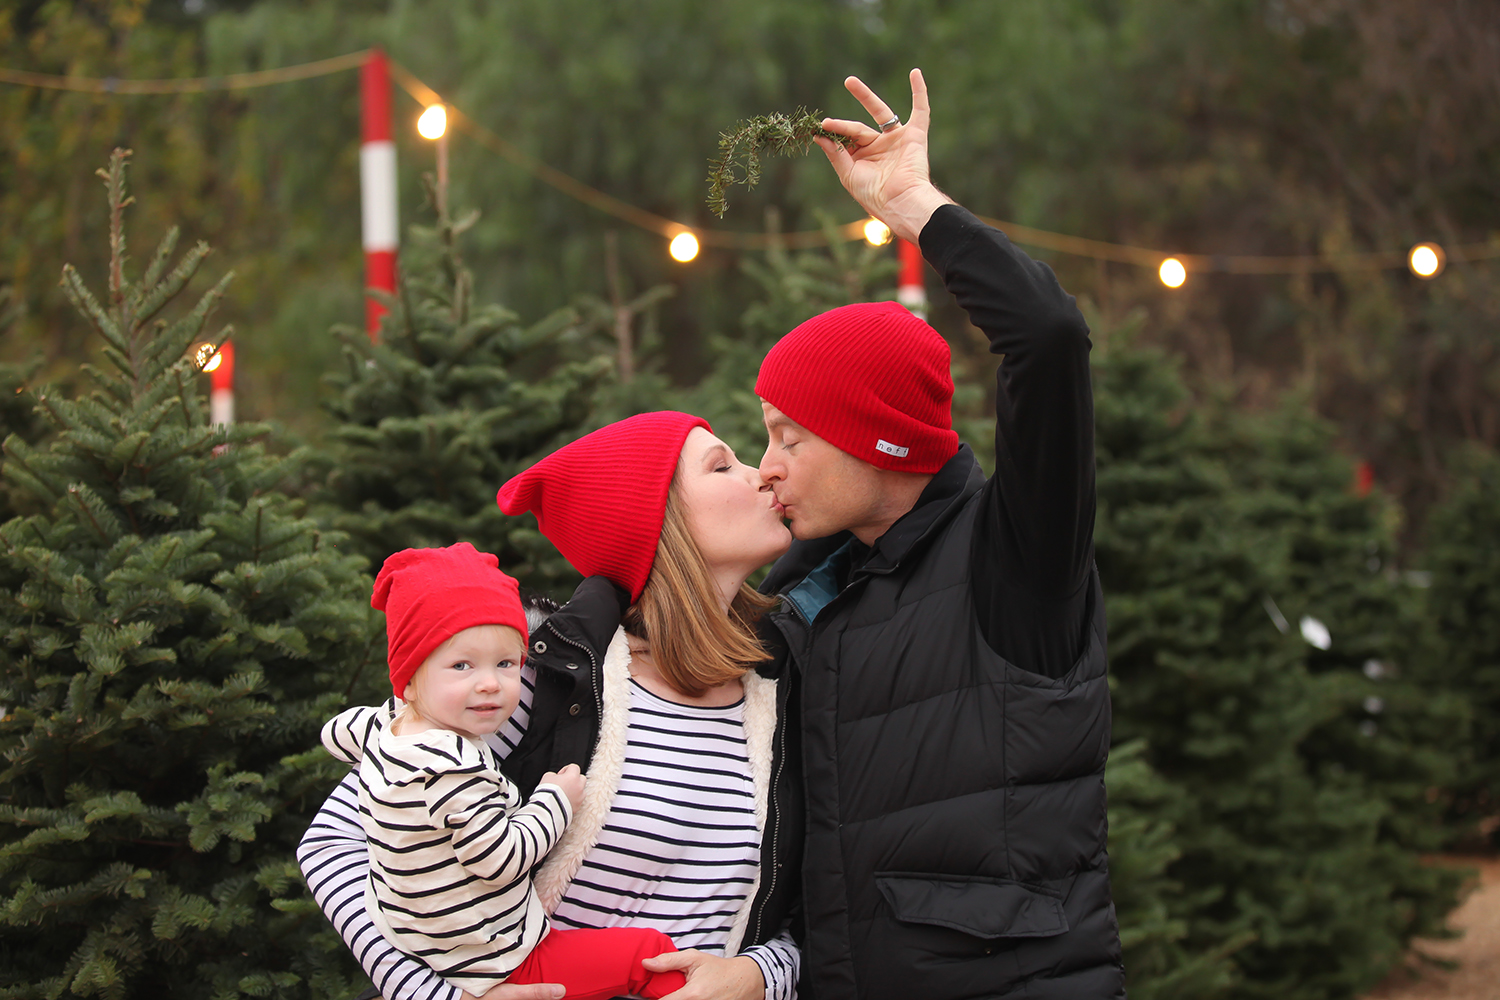 Looking forEasy Family Christmas Pictures Outfits ideas? I love the red accents in this family outfit!